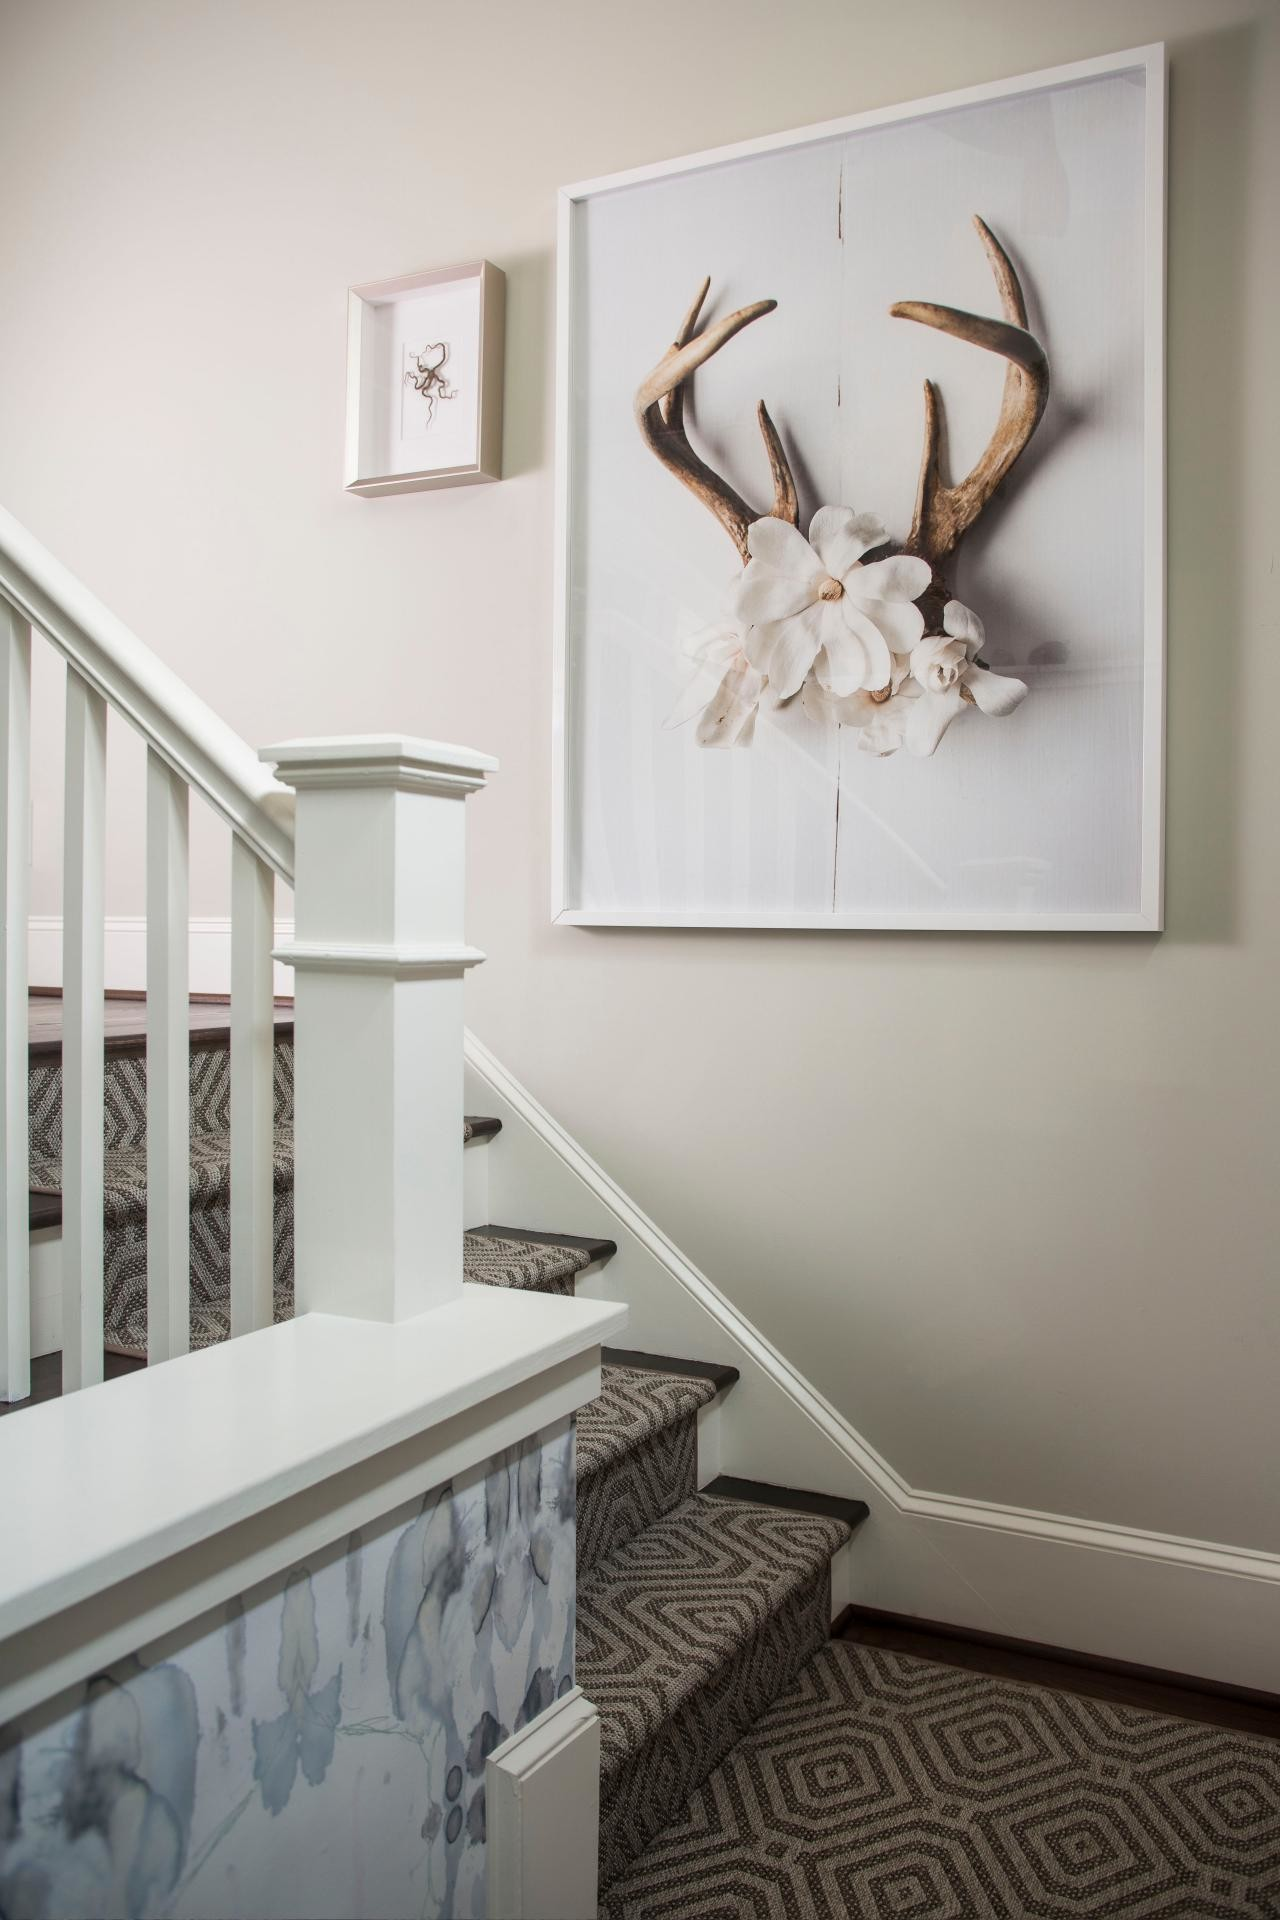 Staircase art picture frame